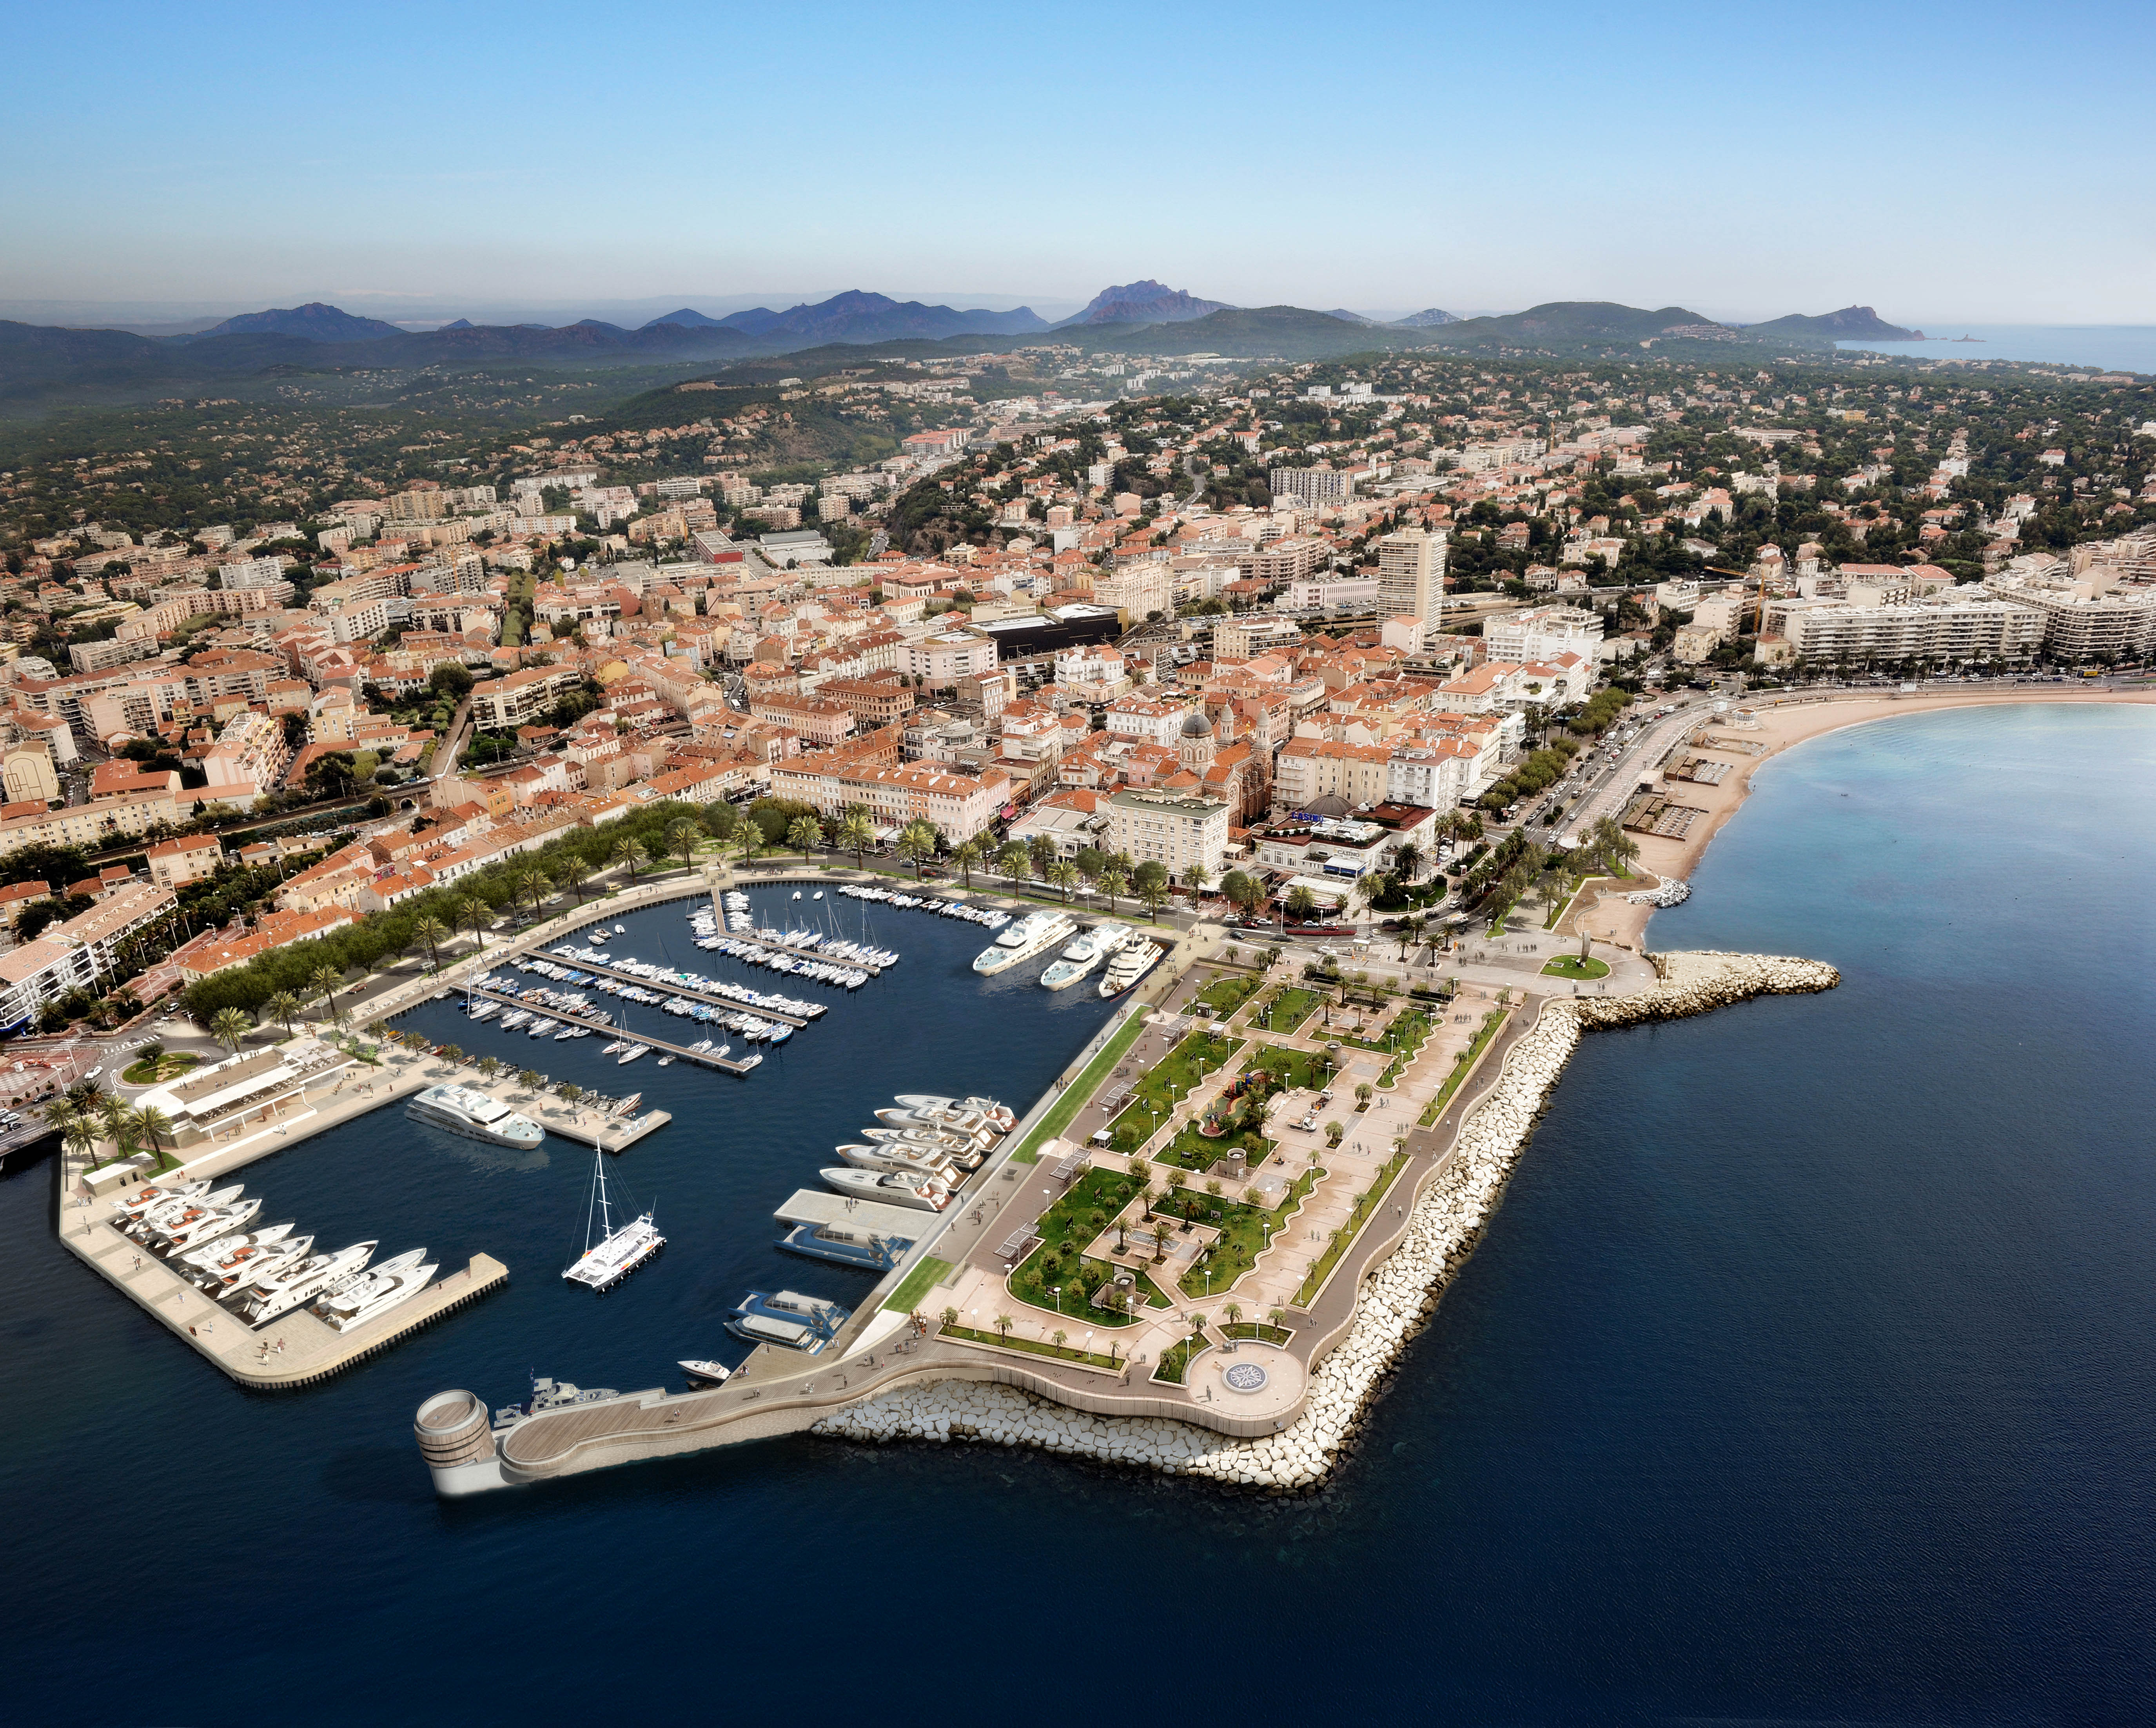 new marina extension in saint raphael mediterranean berths marinas. Black Bedroom Furniture Sets. Home Design Ideas